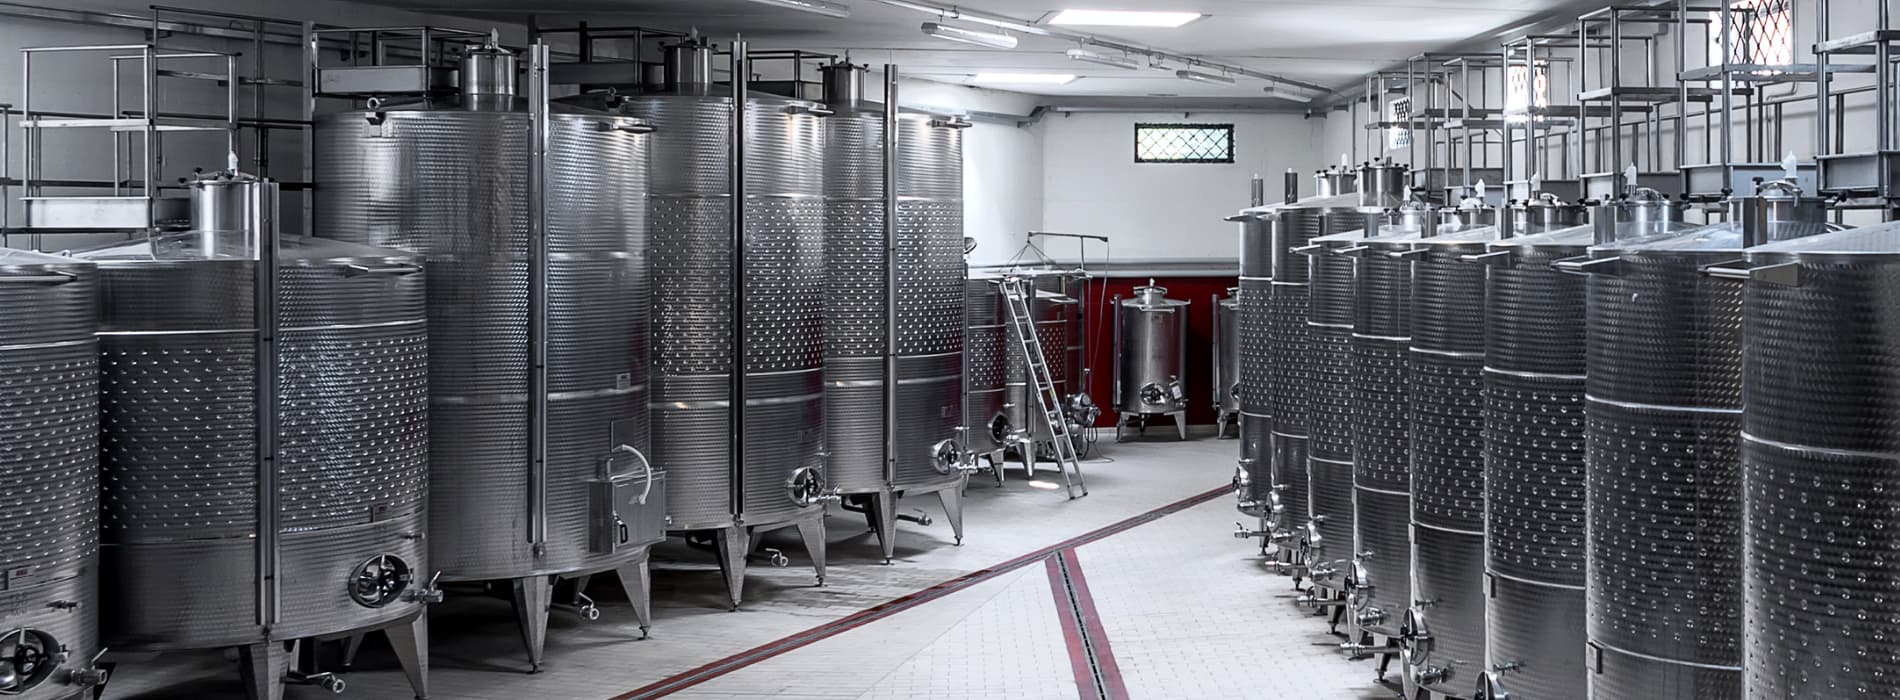 ISOtherm-sectional-overhead-doors-for-winery-cellar